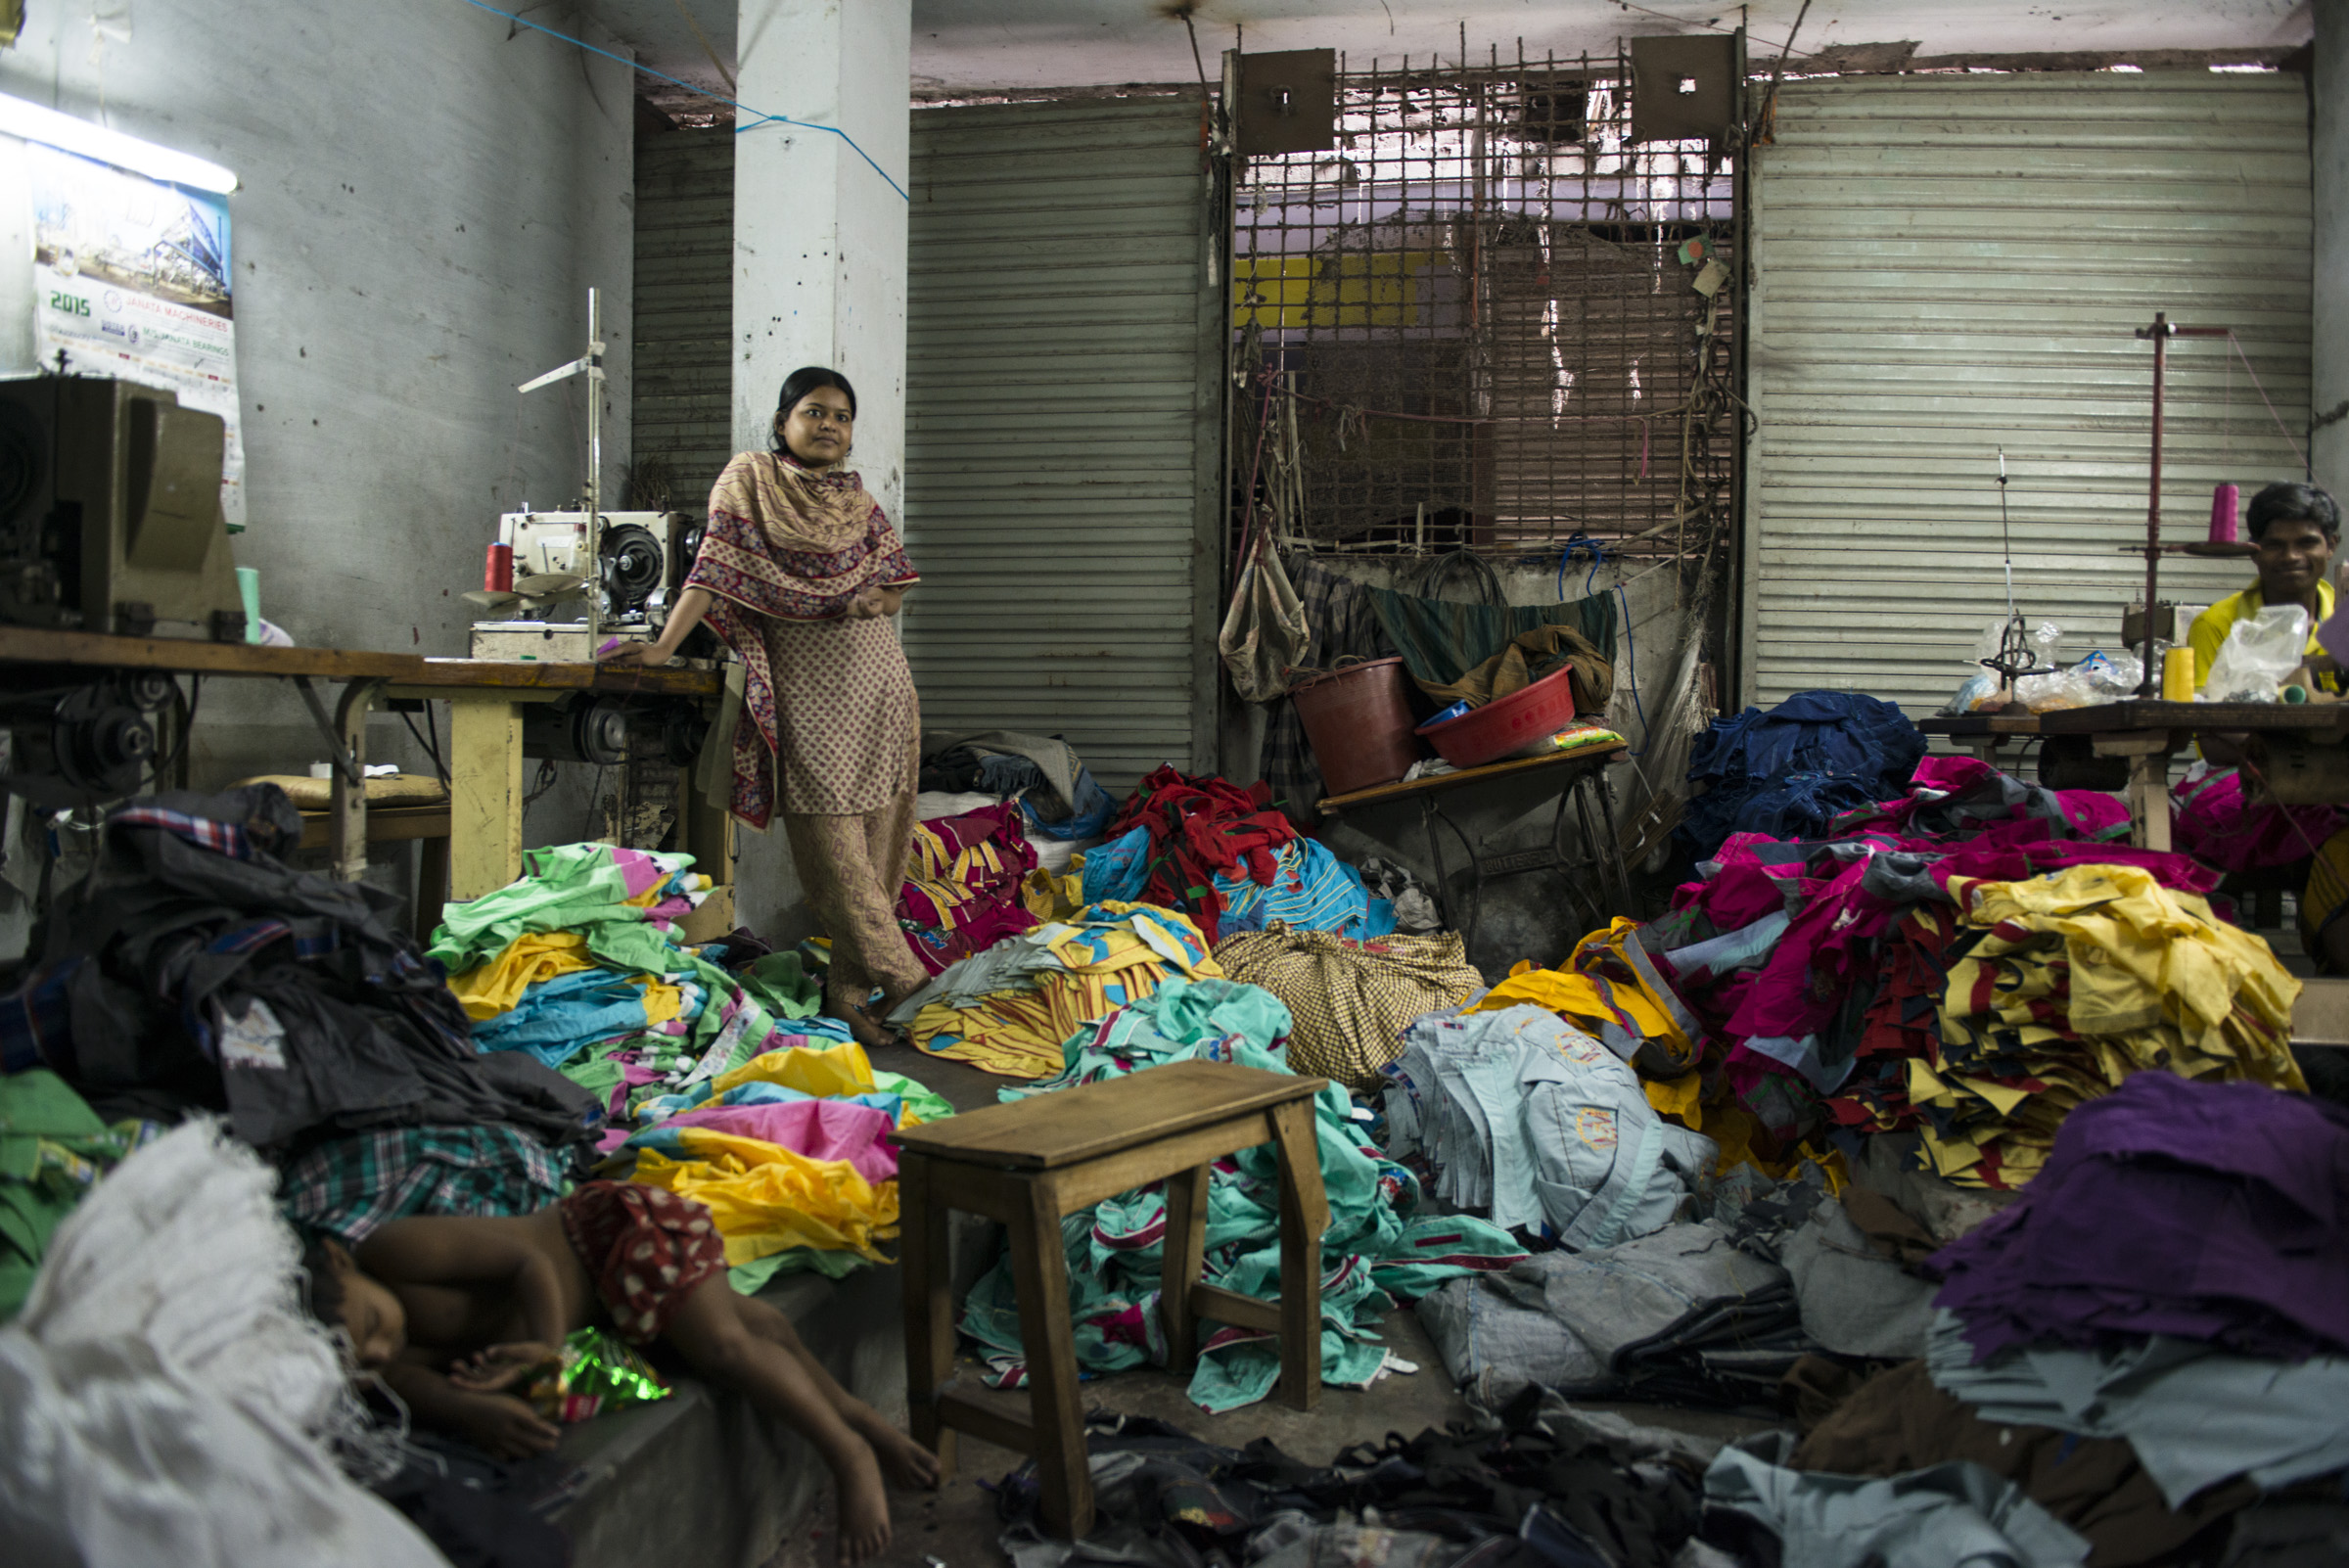 A female garment worker stands amidst children clothes. Due to a lack of child care facilities most young children spend their time with their mother at the workplace. Picture: Claudio Montesano Casillas.